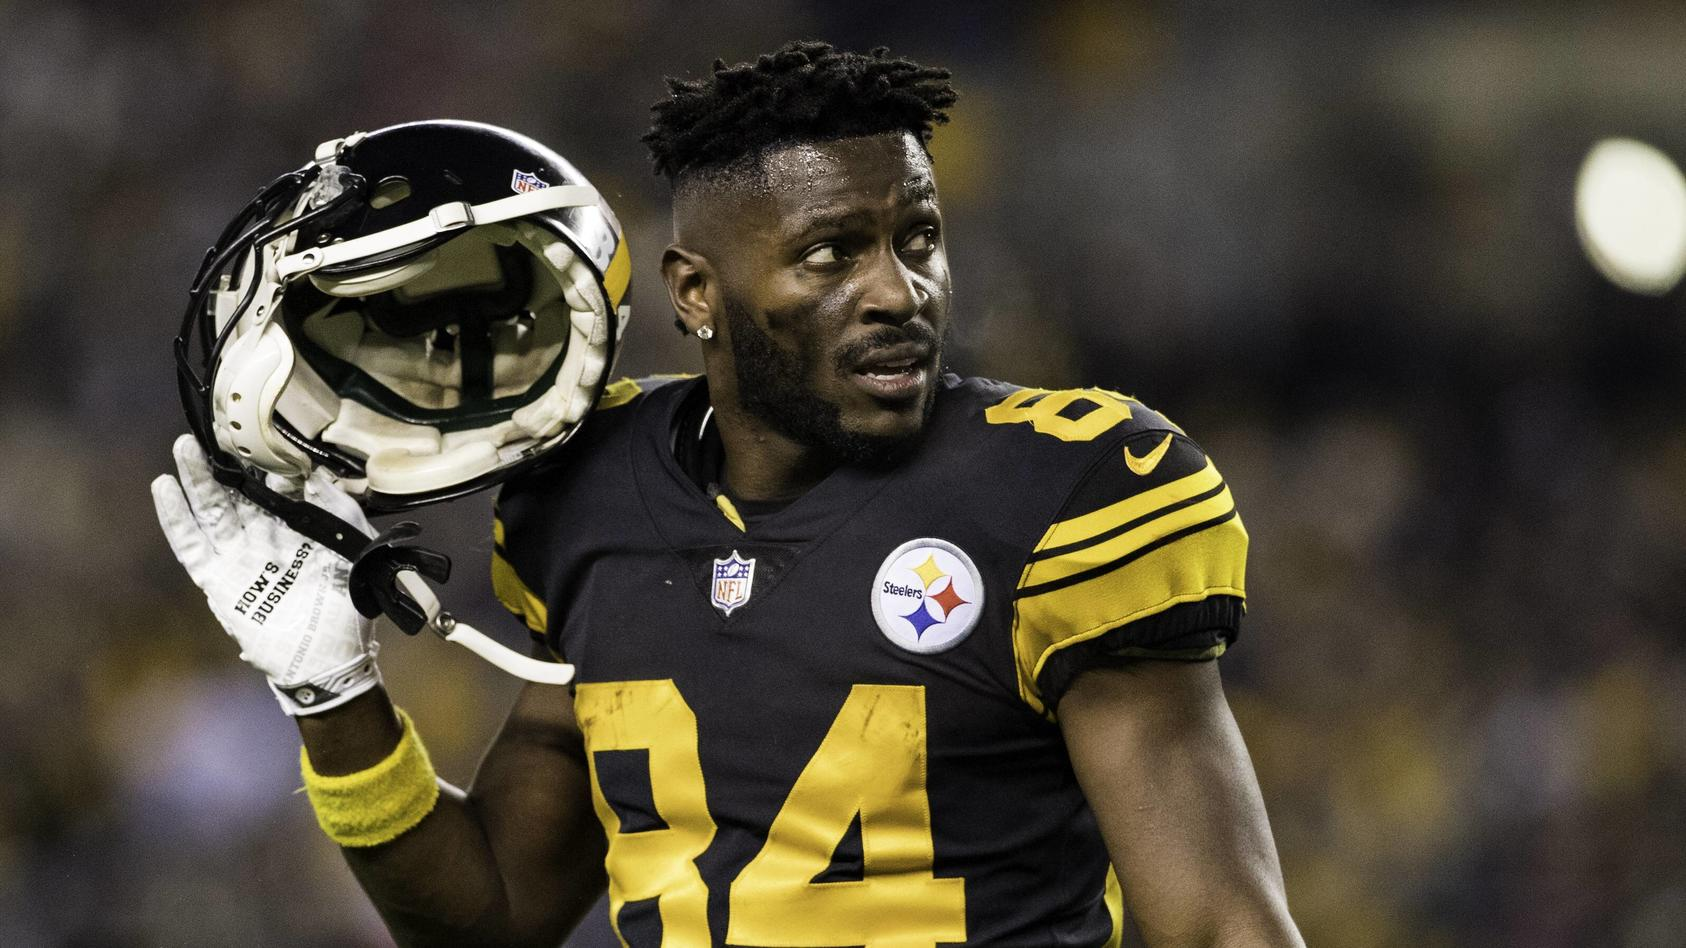 PITTSBURGH PA DECEMBER 16 Pittsburgh Steelers wide receiver Antonio Brown 84 looks on during t